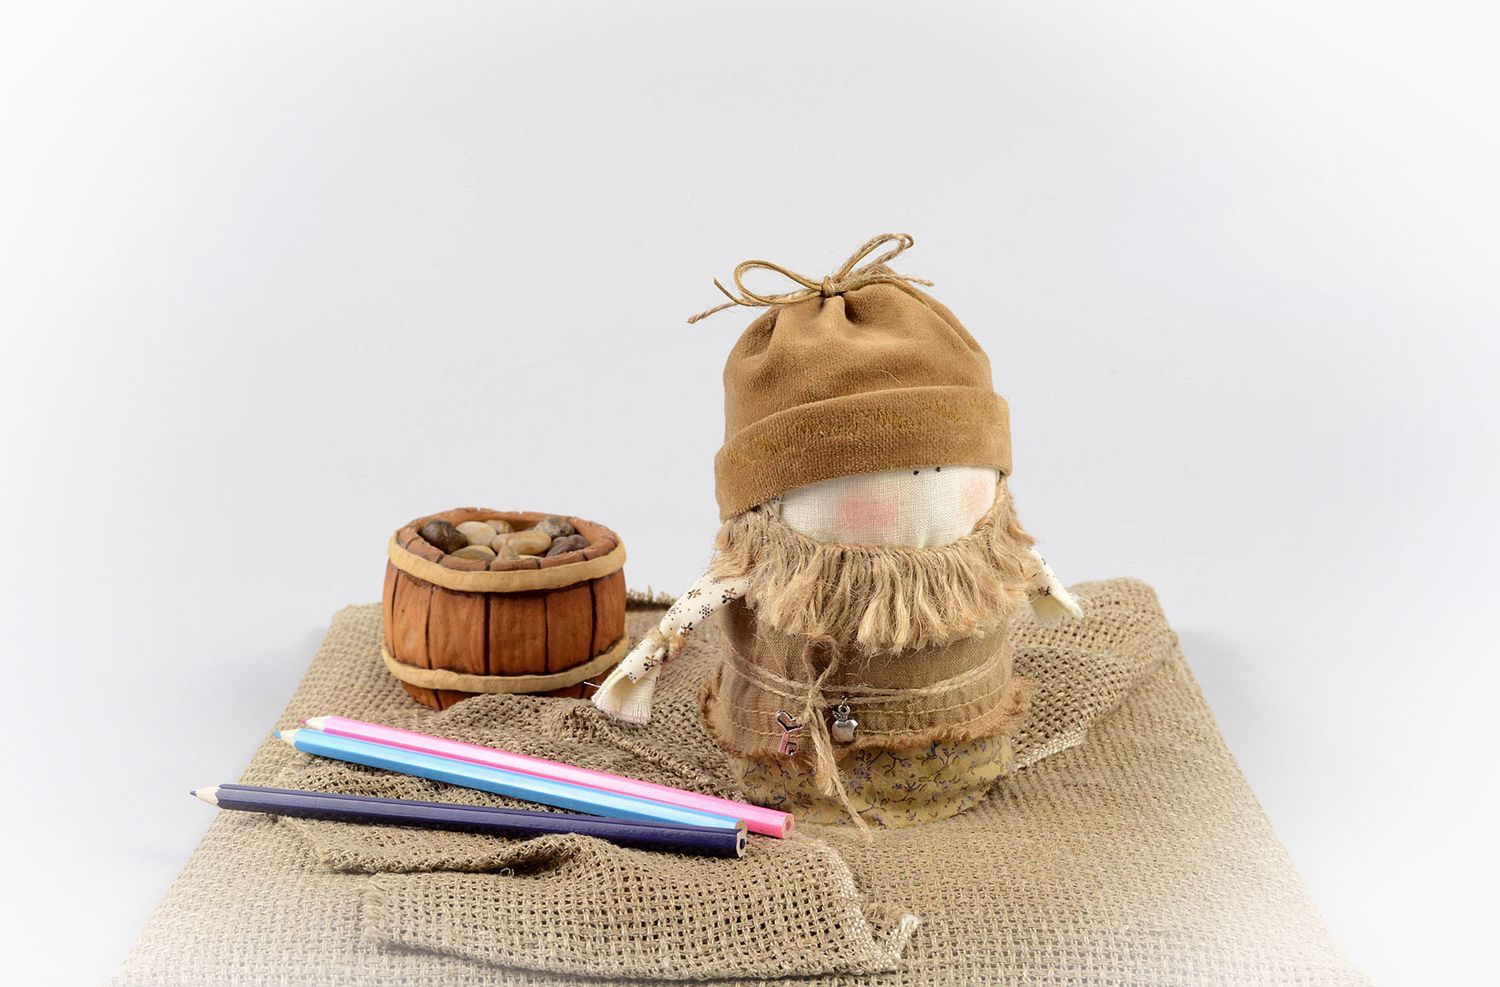 Handmade decorative doll primitive doll housewarming gifts for decorative use photo 5